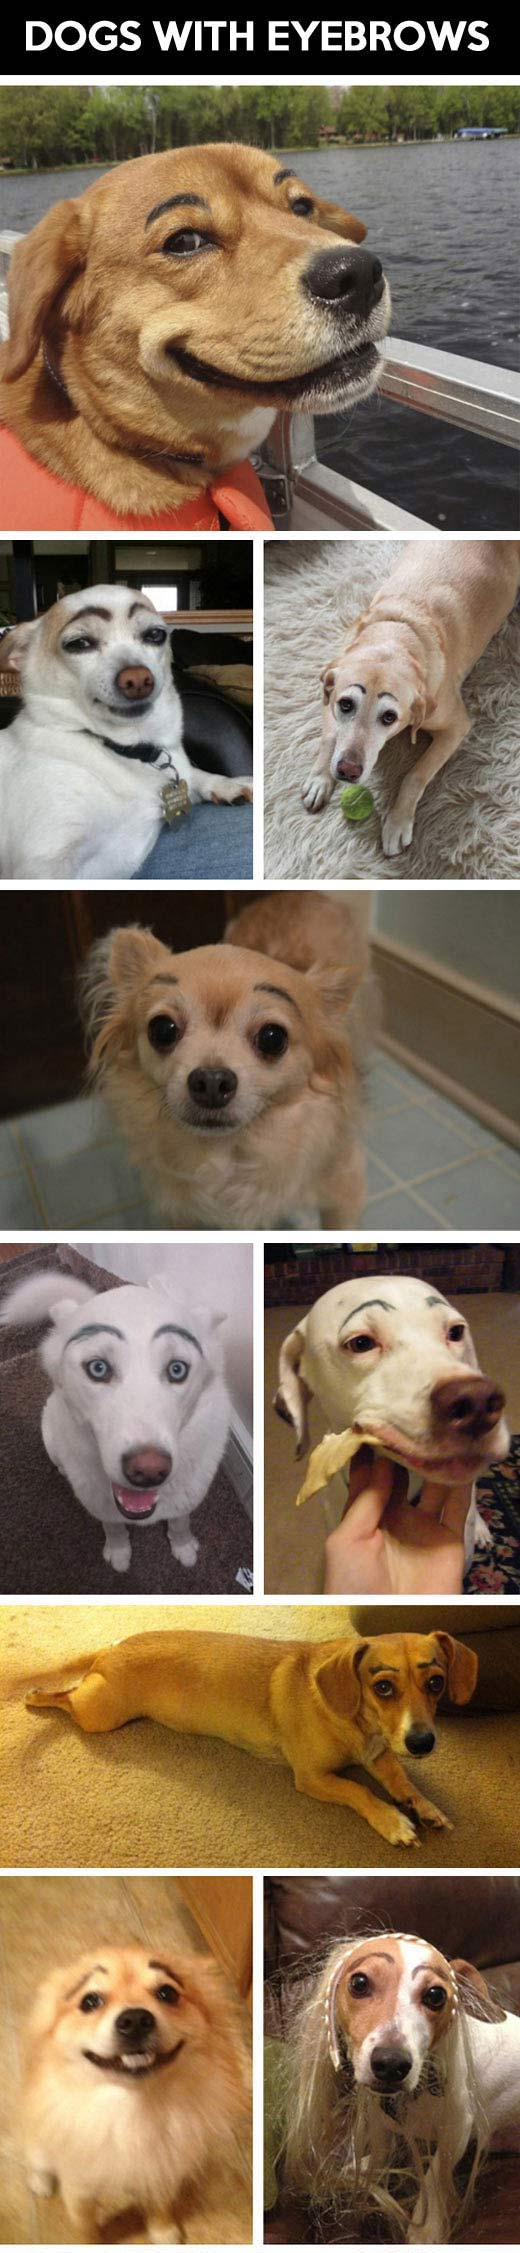 Dogs with eyebrows...